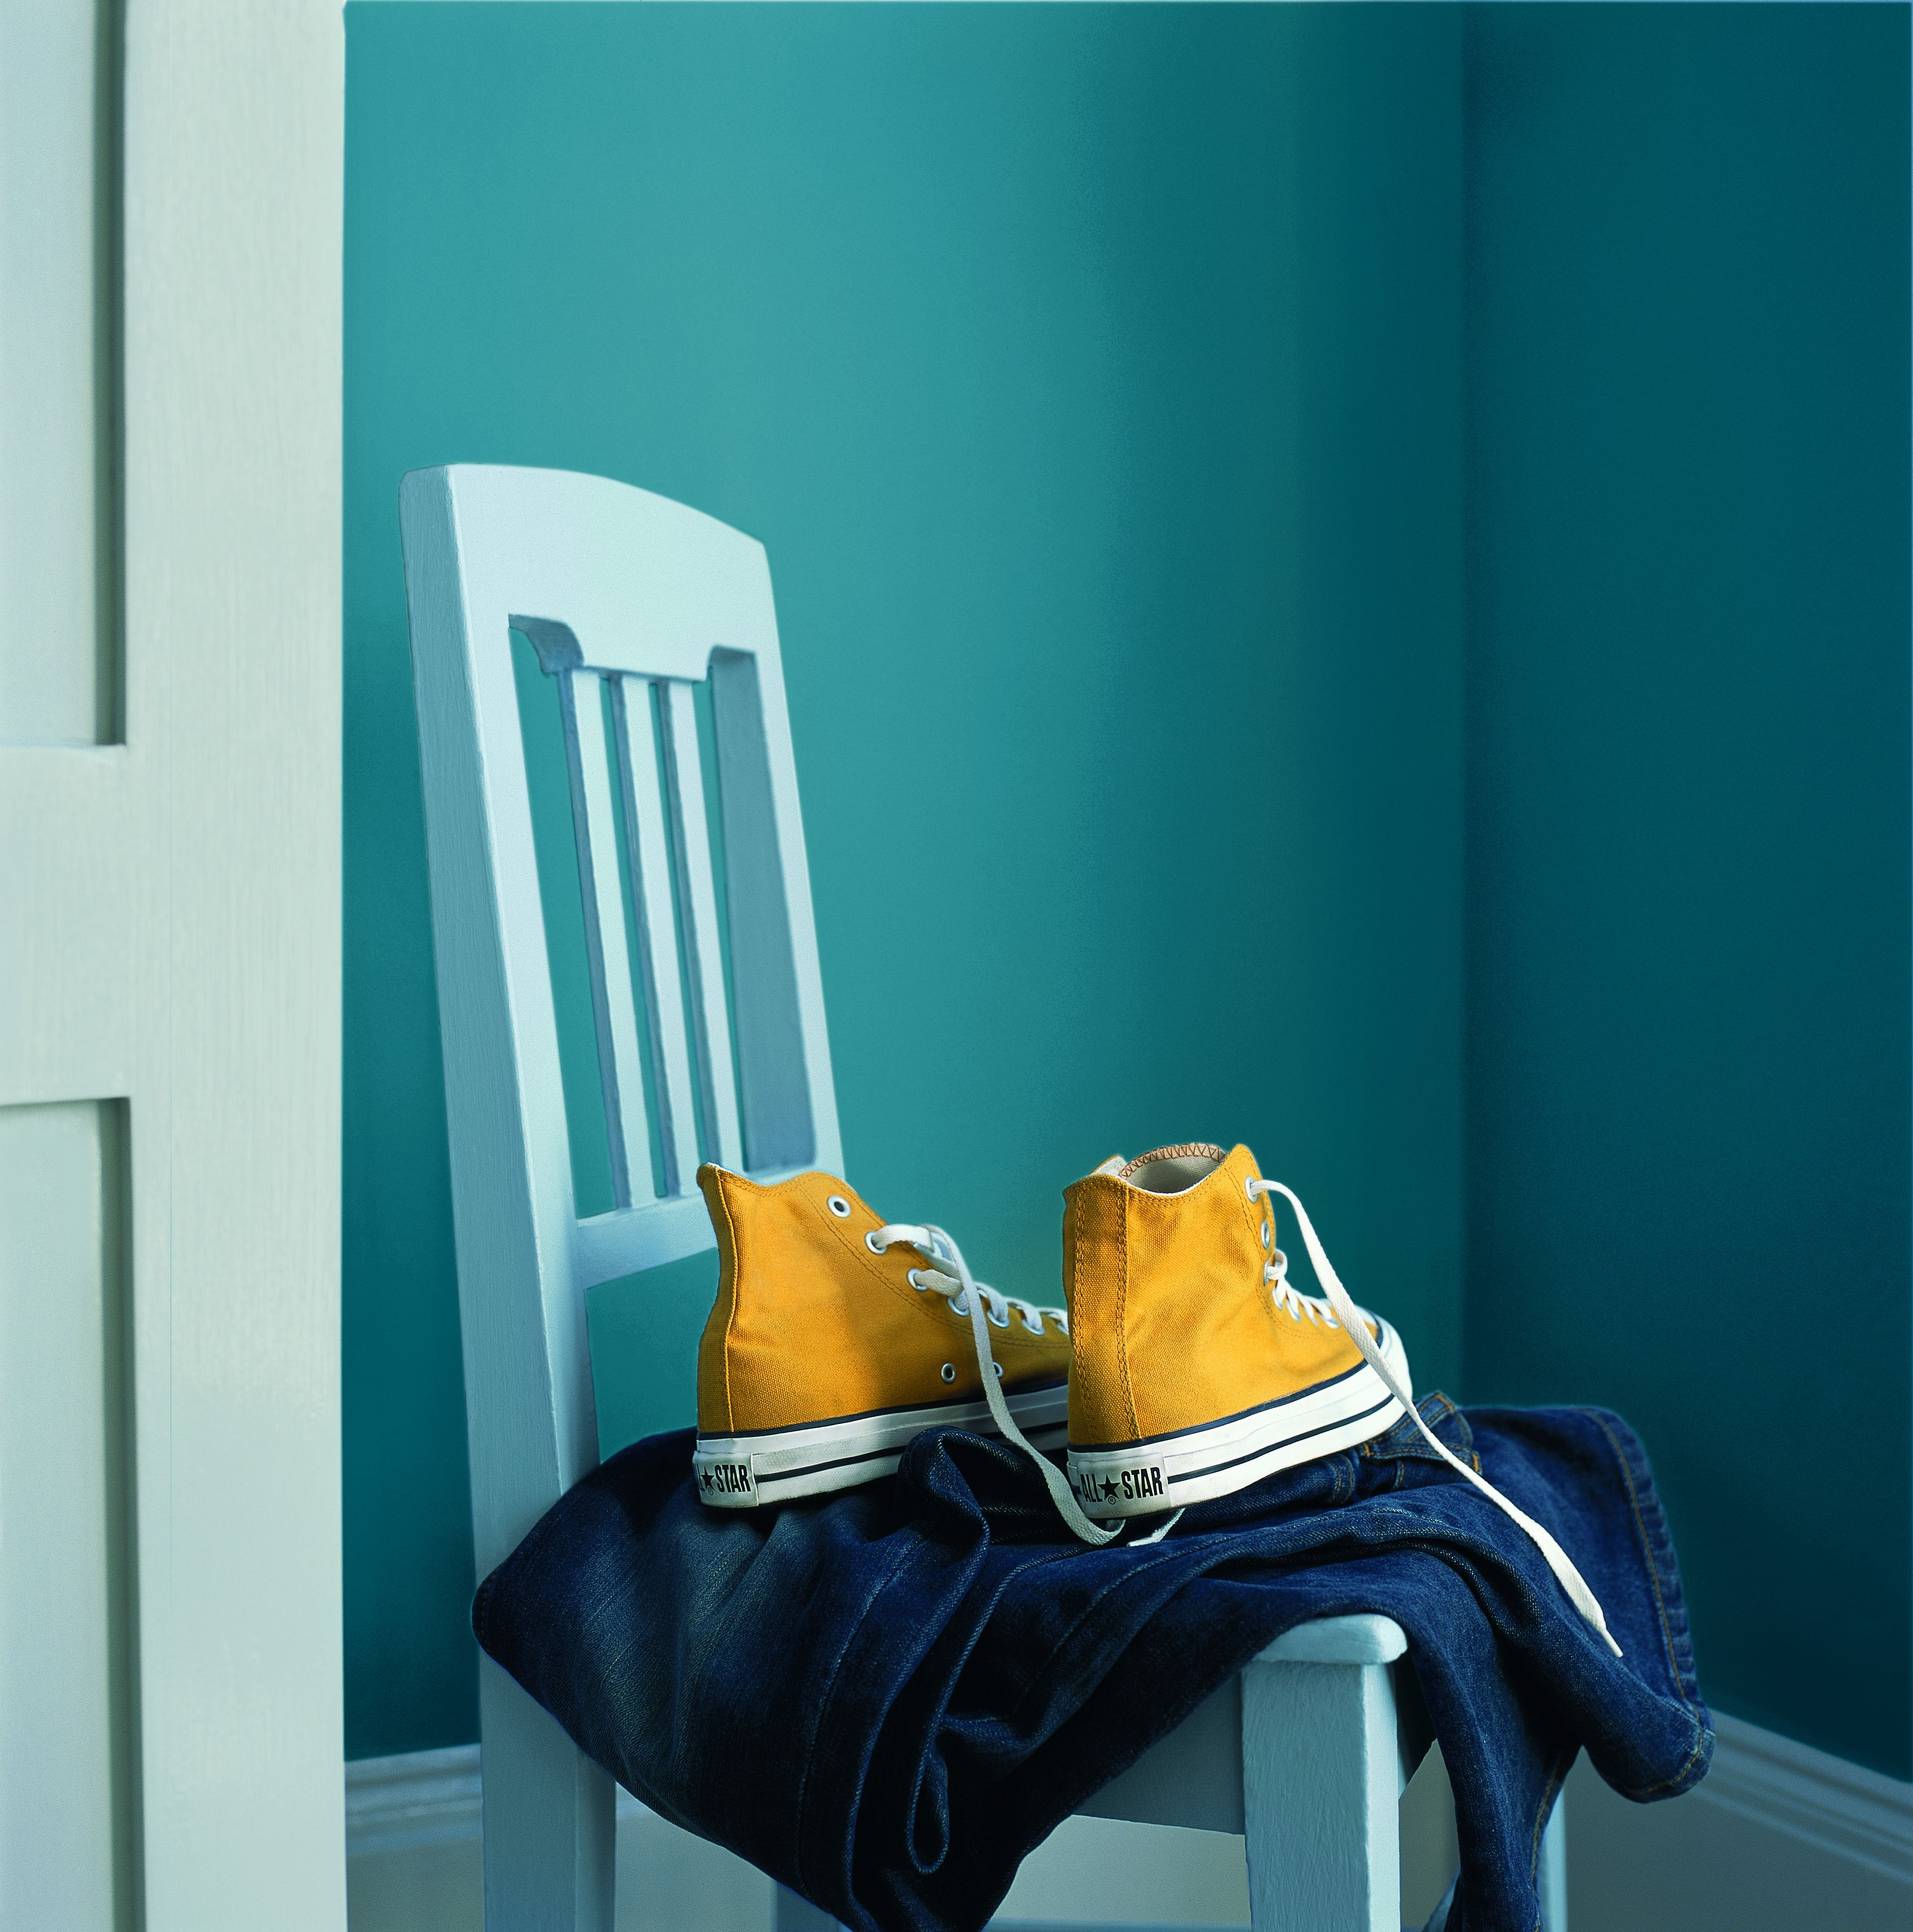 Contrast Dulux Sea Urchin 1 With Bright Colour Pops